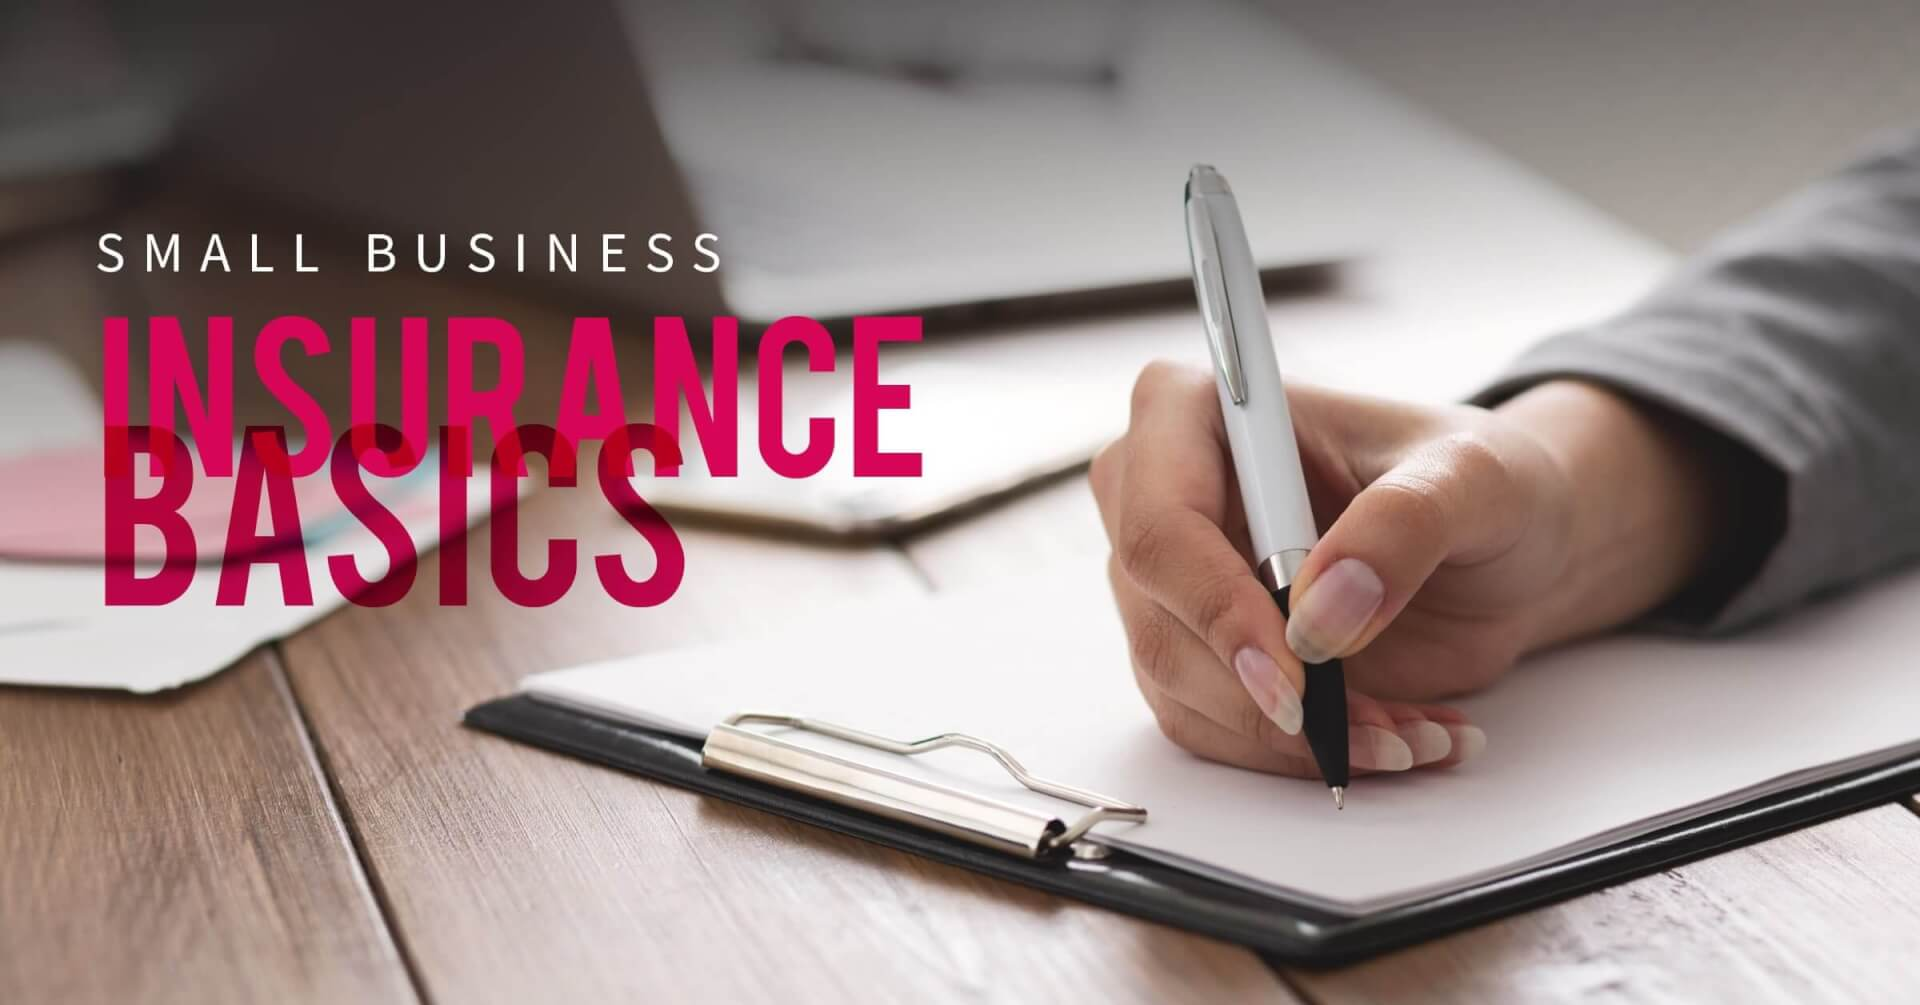 Social Business - Small Business Insurance Basics